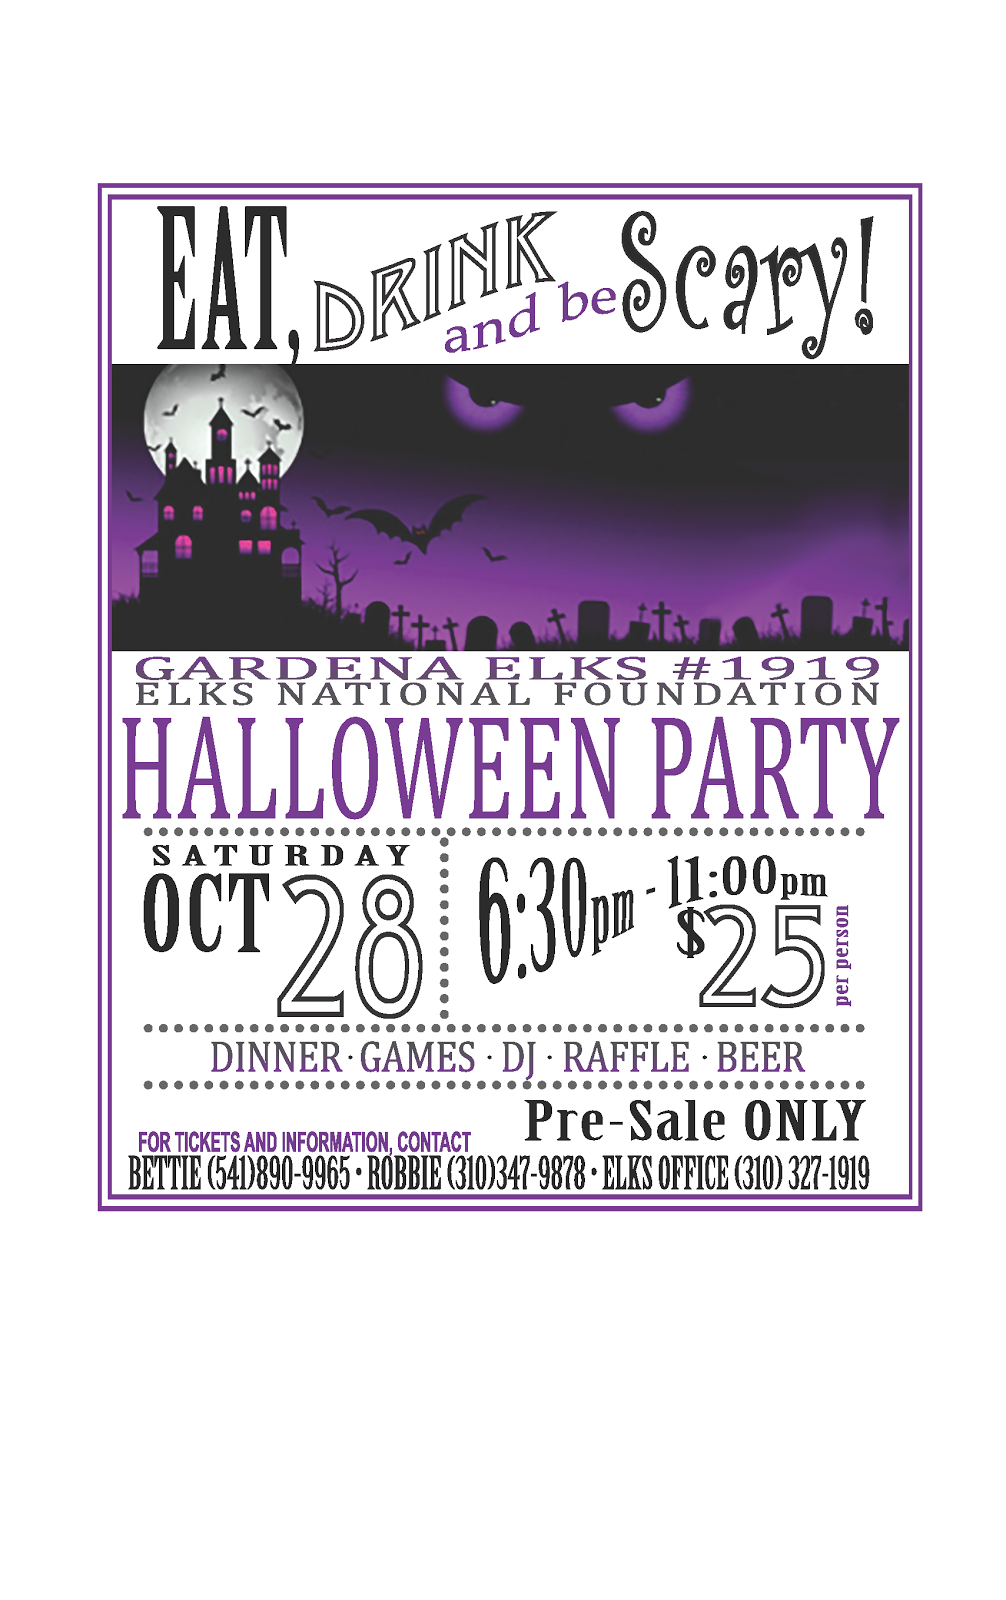 Halloween Party - Oct 28th